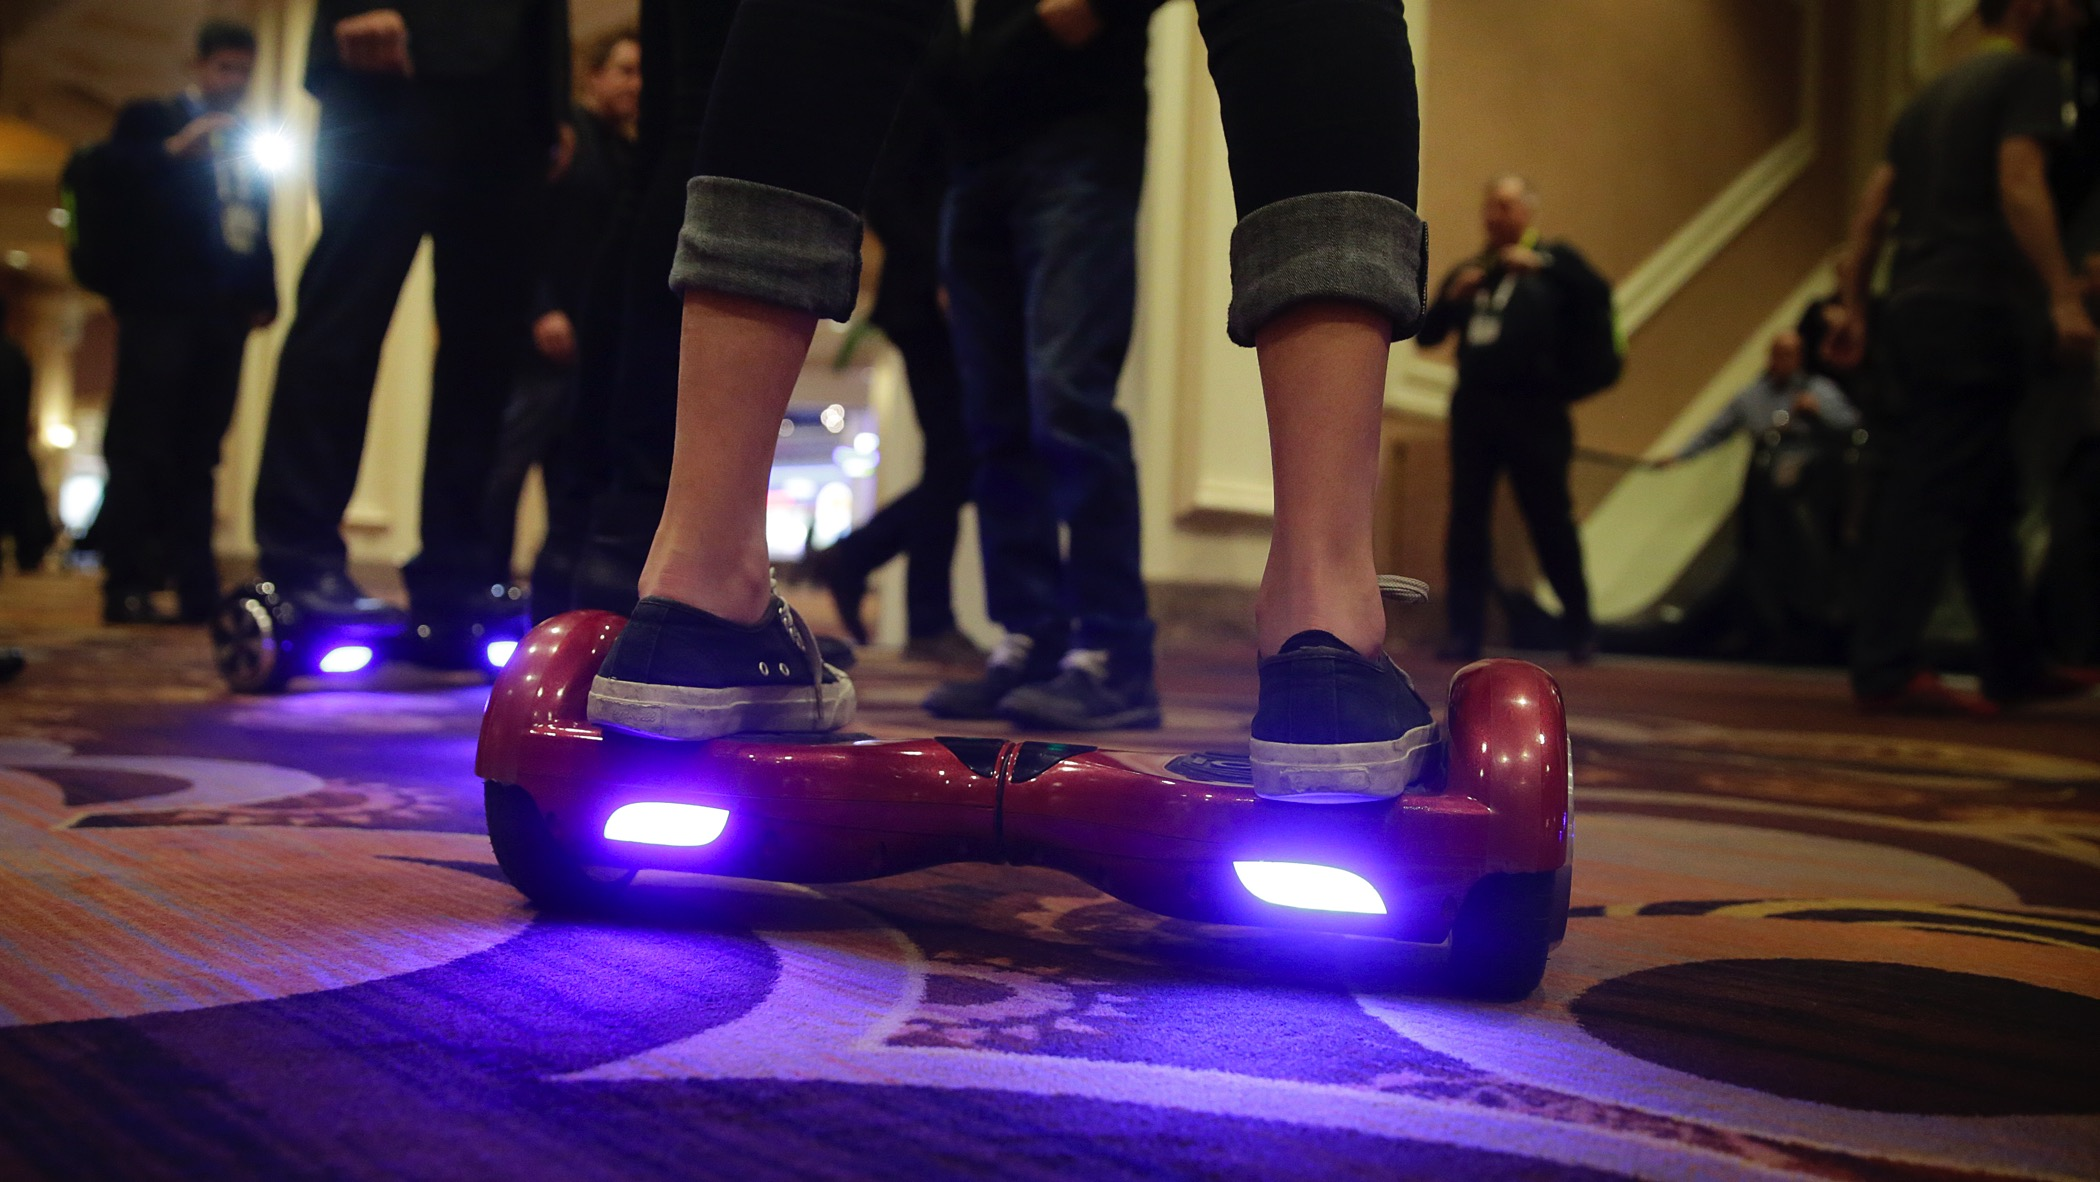 A woman rides an IO Hawk, a self-balancing motorized personal transporter at the International CES, Monday, Jan. 5, 2015, in Las Vegas. The world's largest annual trade show officially opens Tuesday. (AP Photo/Jae C. Hong)